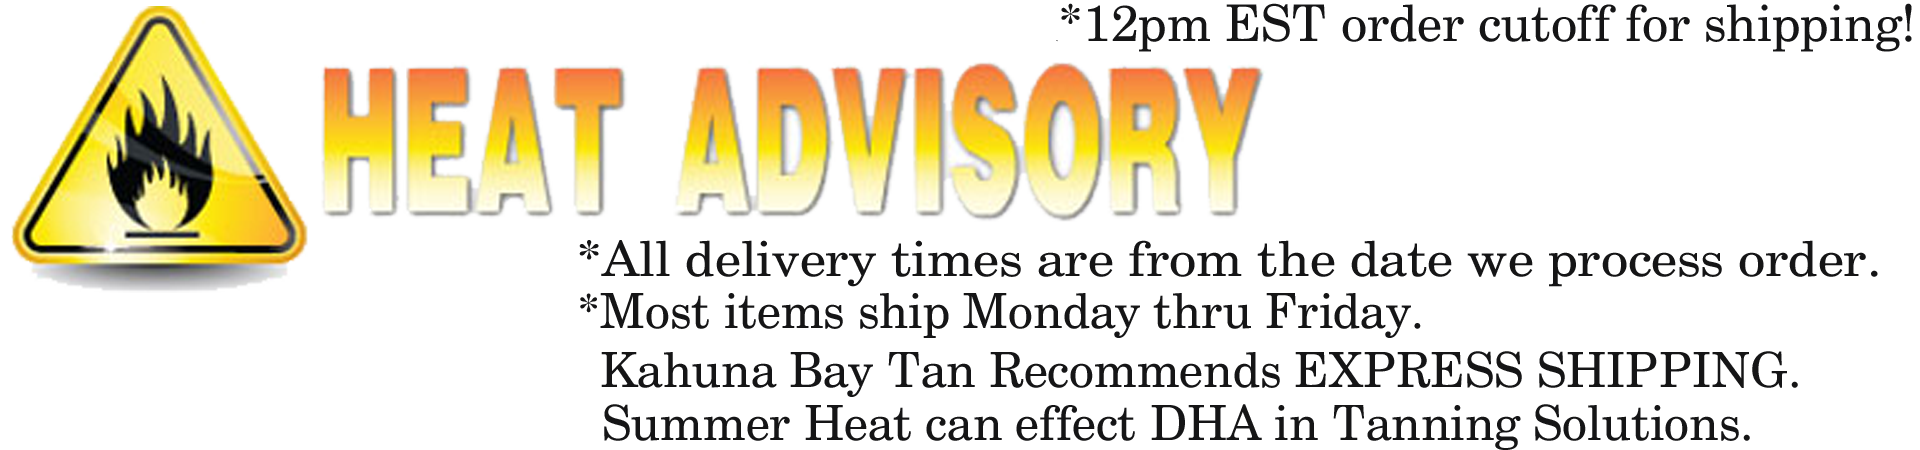 heat-advisory2-copy.png